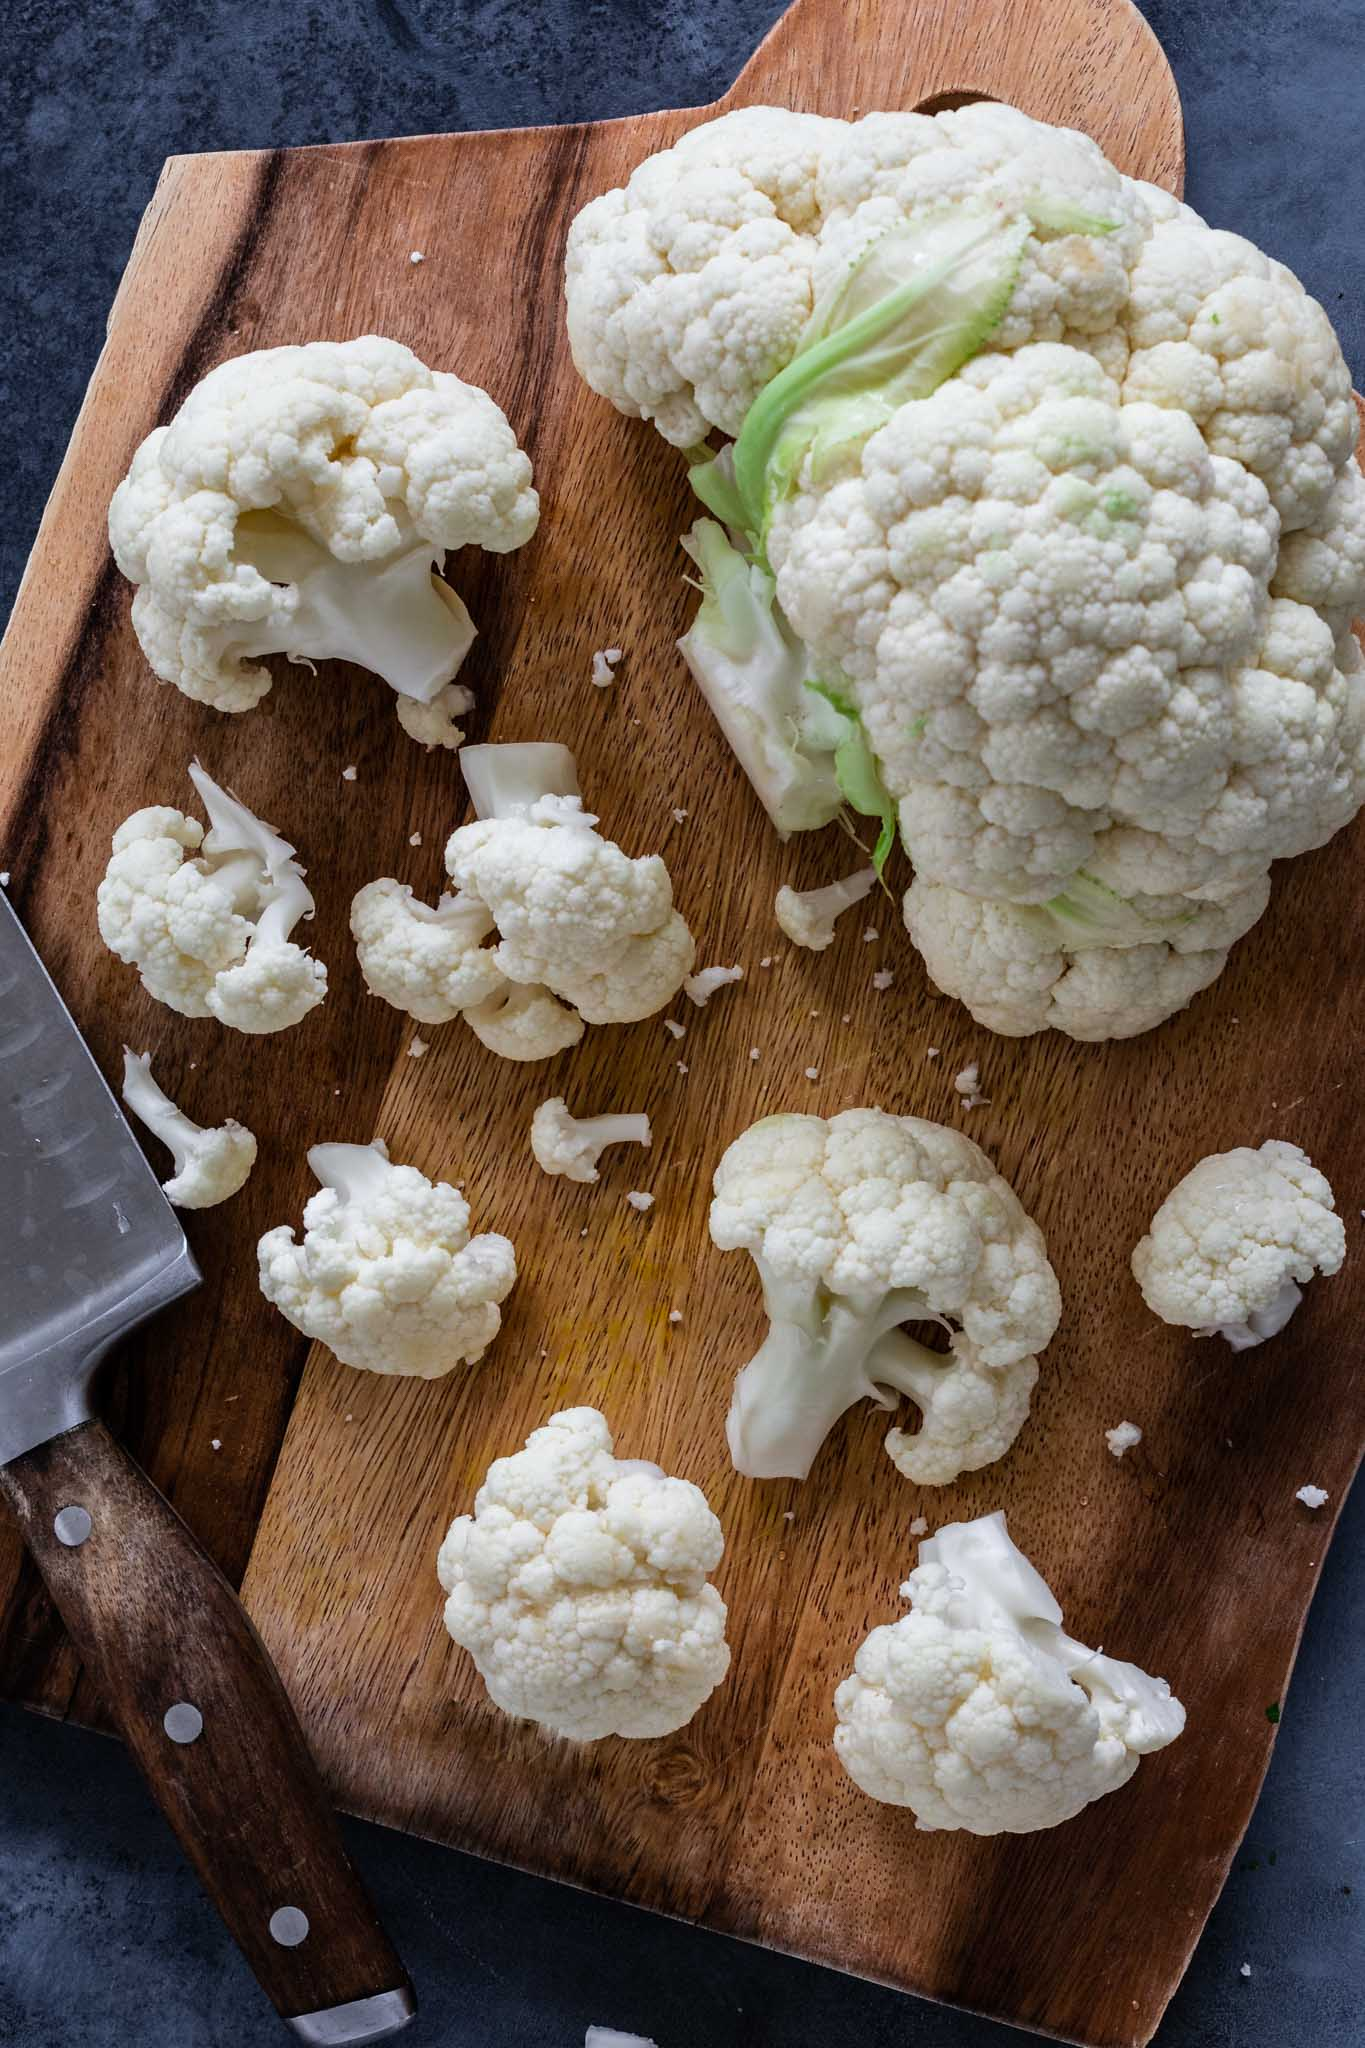 Fresh cauliflower being chopped